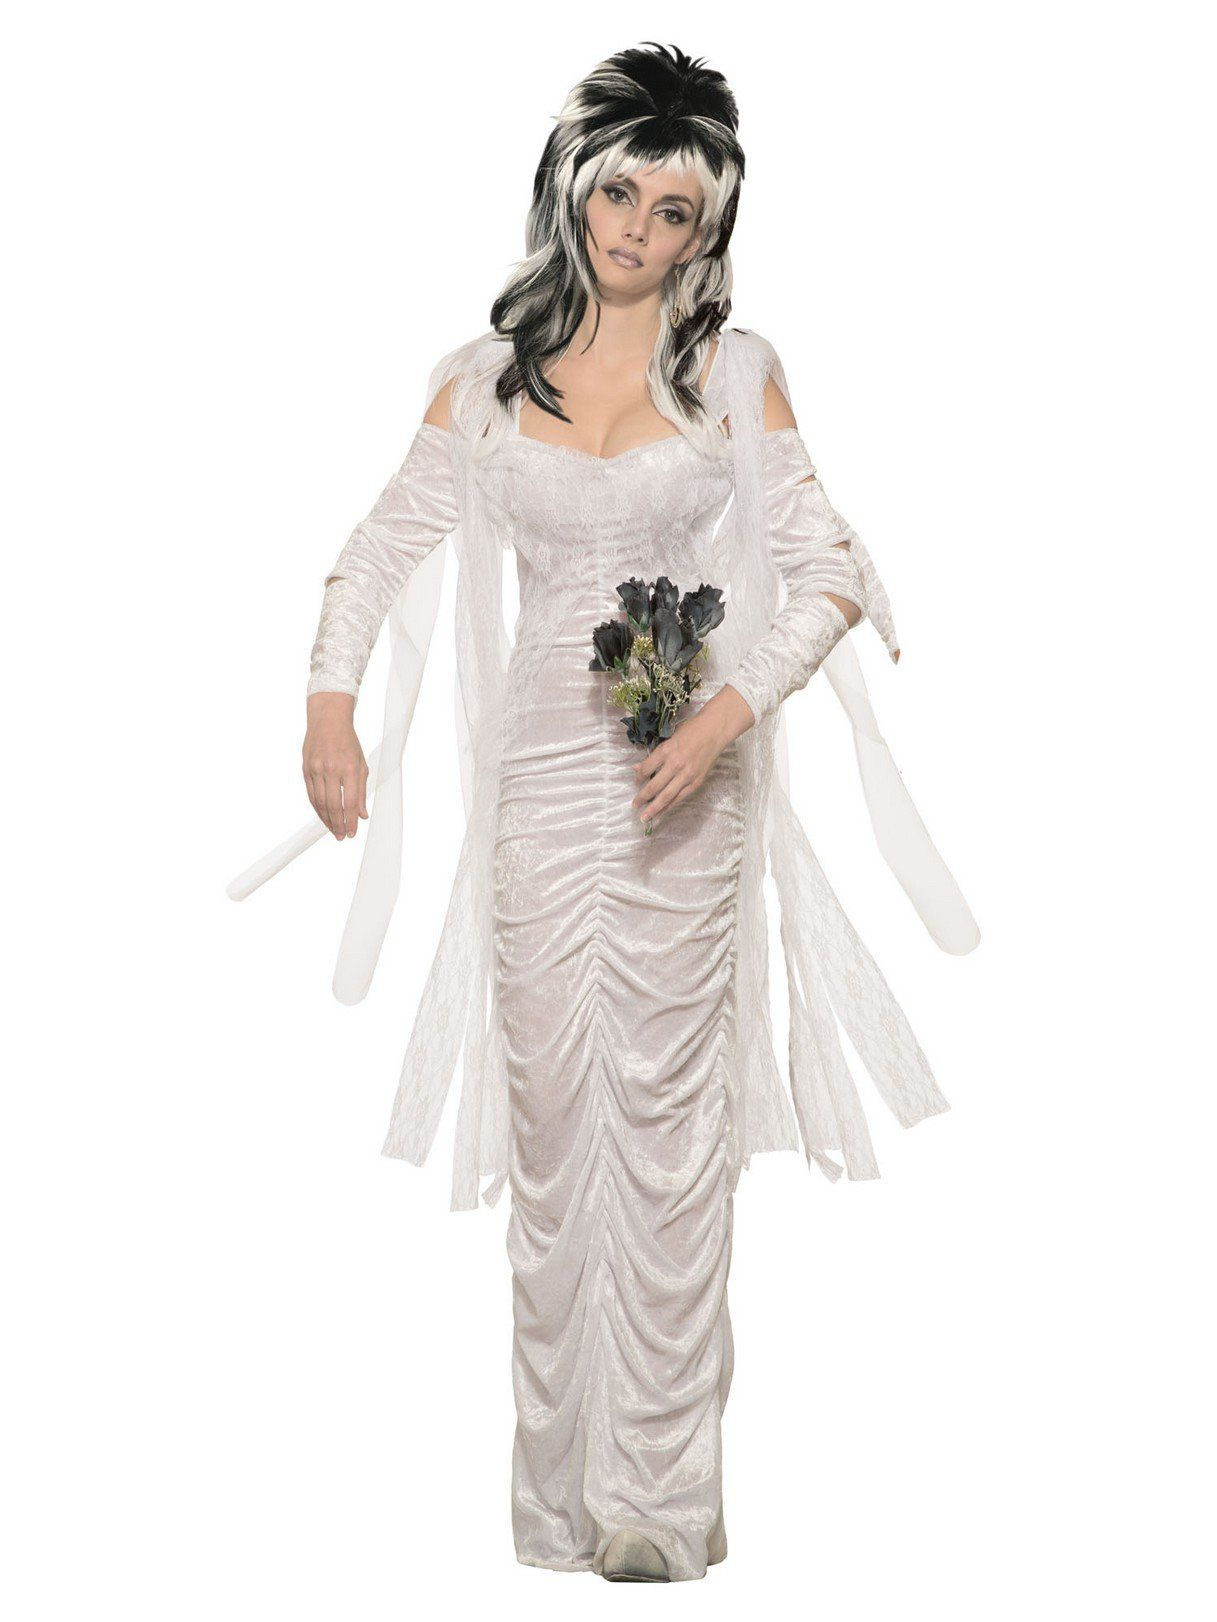 Haunted Bride Adult Costume